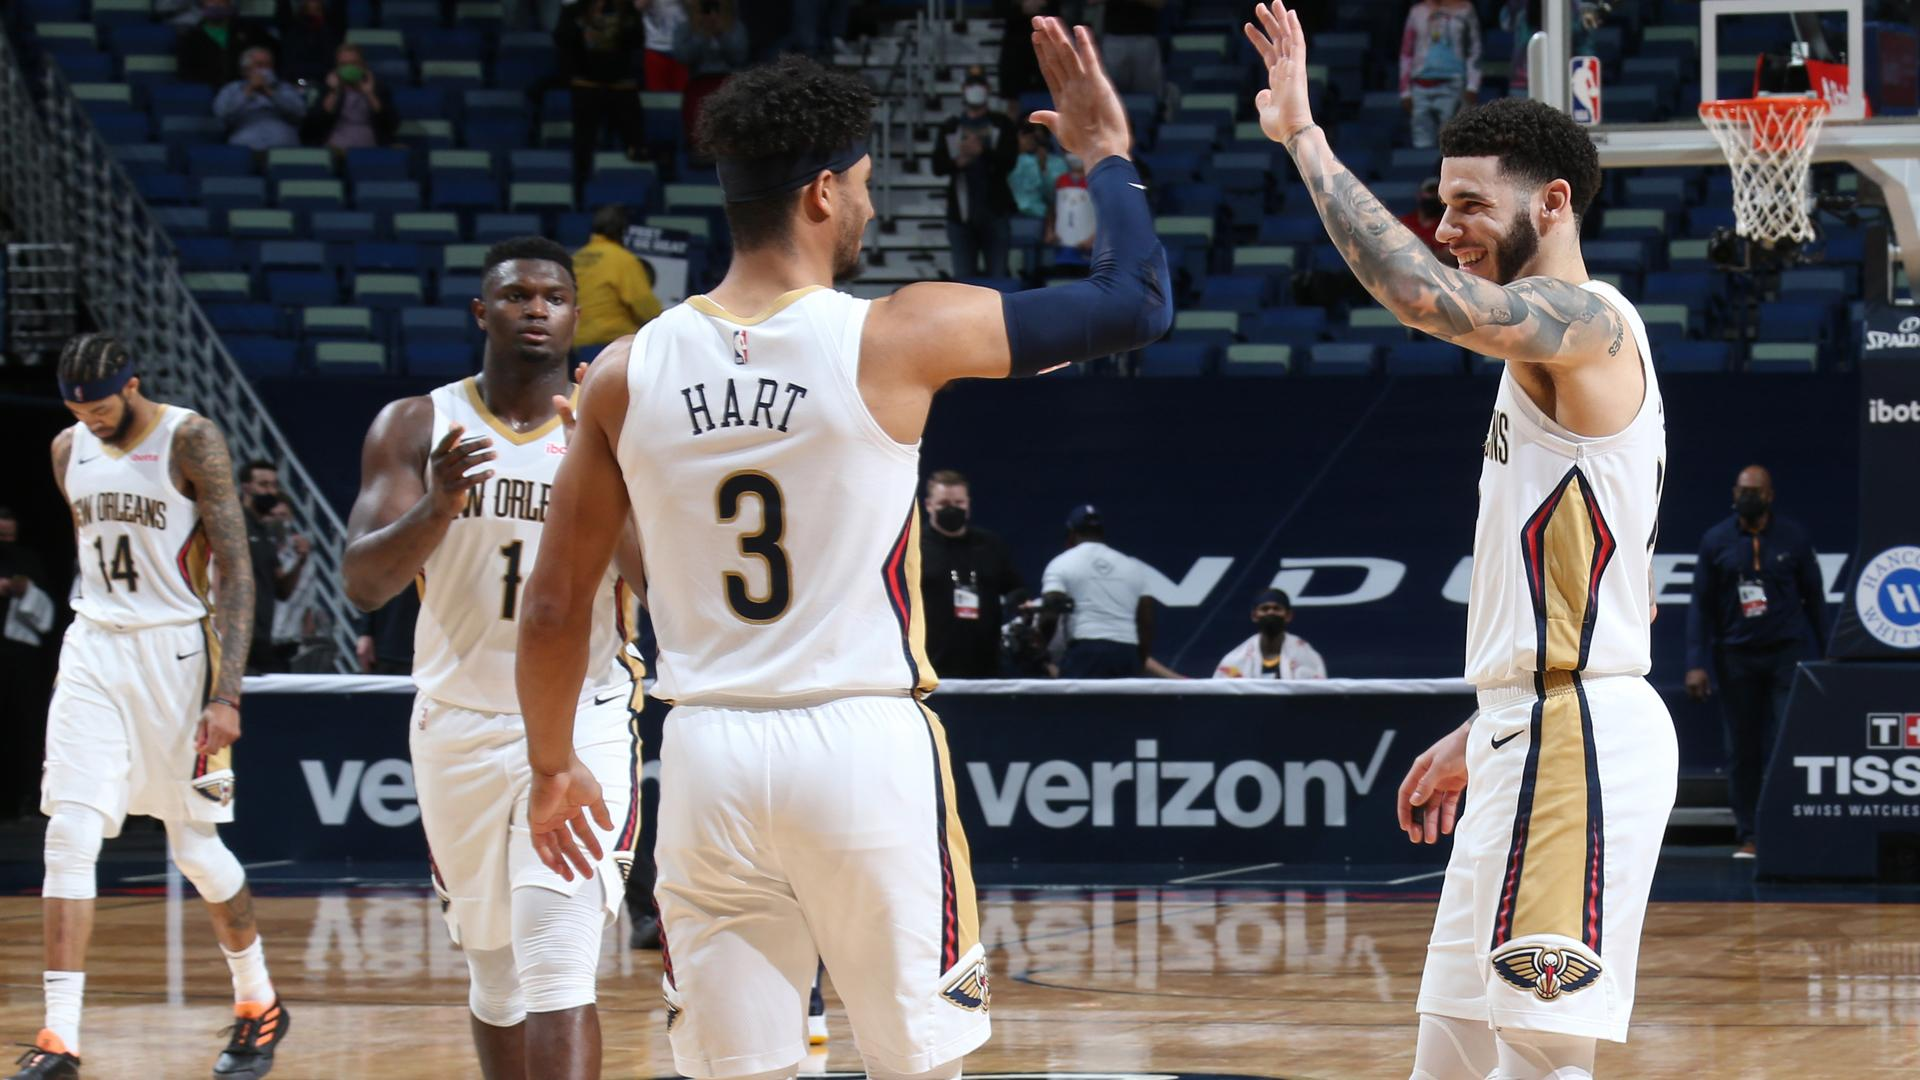 Highlights: Pelicans' trio of Zion Williamson, Brandon Ingram & Lonzo Ball goes off vs. Jazz